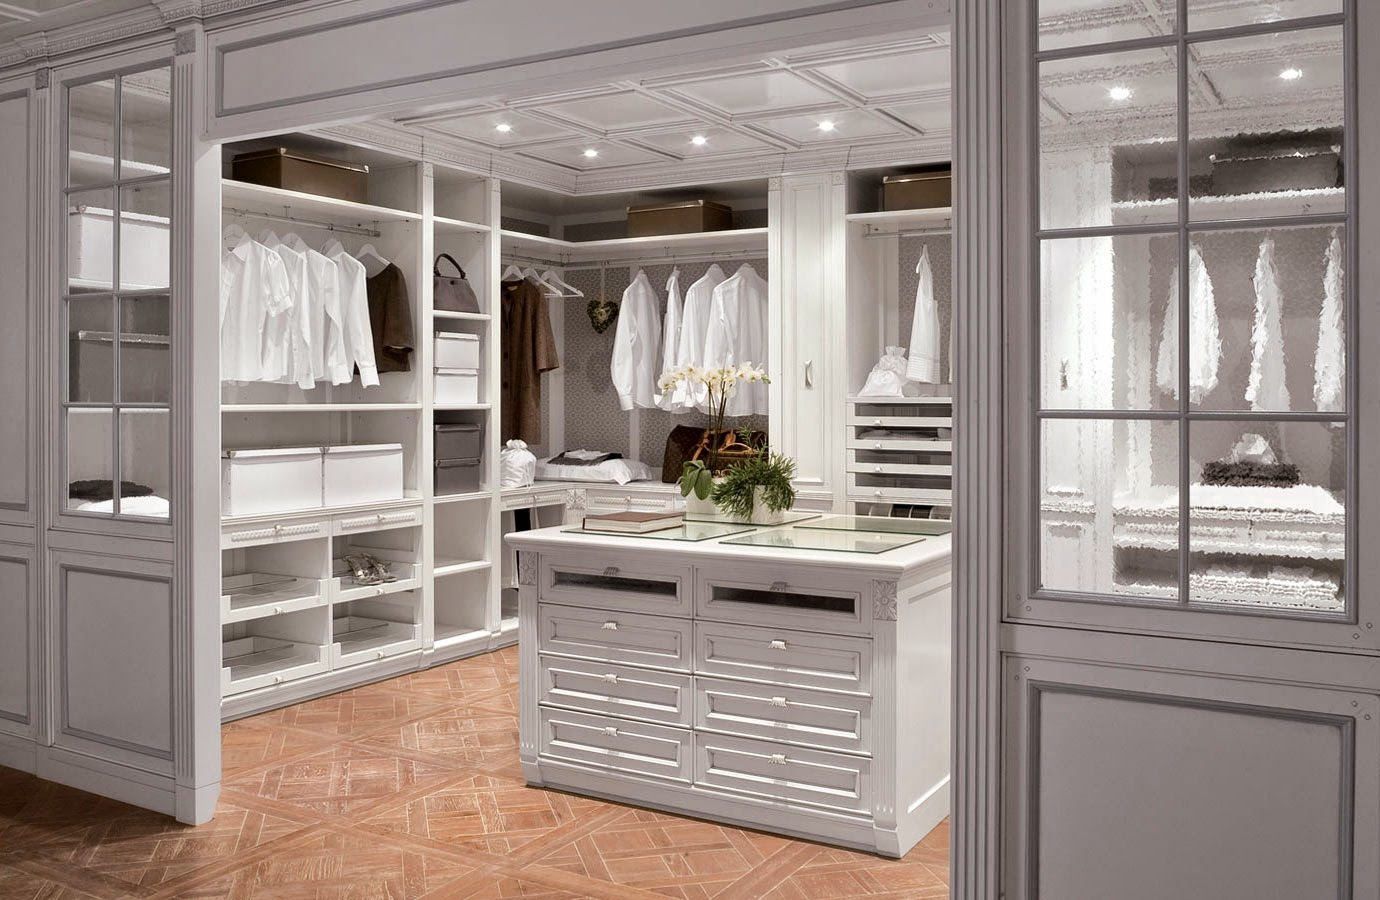 Wardrobe-Clothes-Design-Minimalist